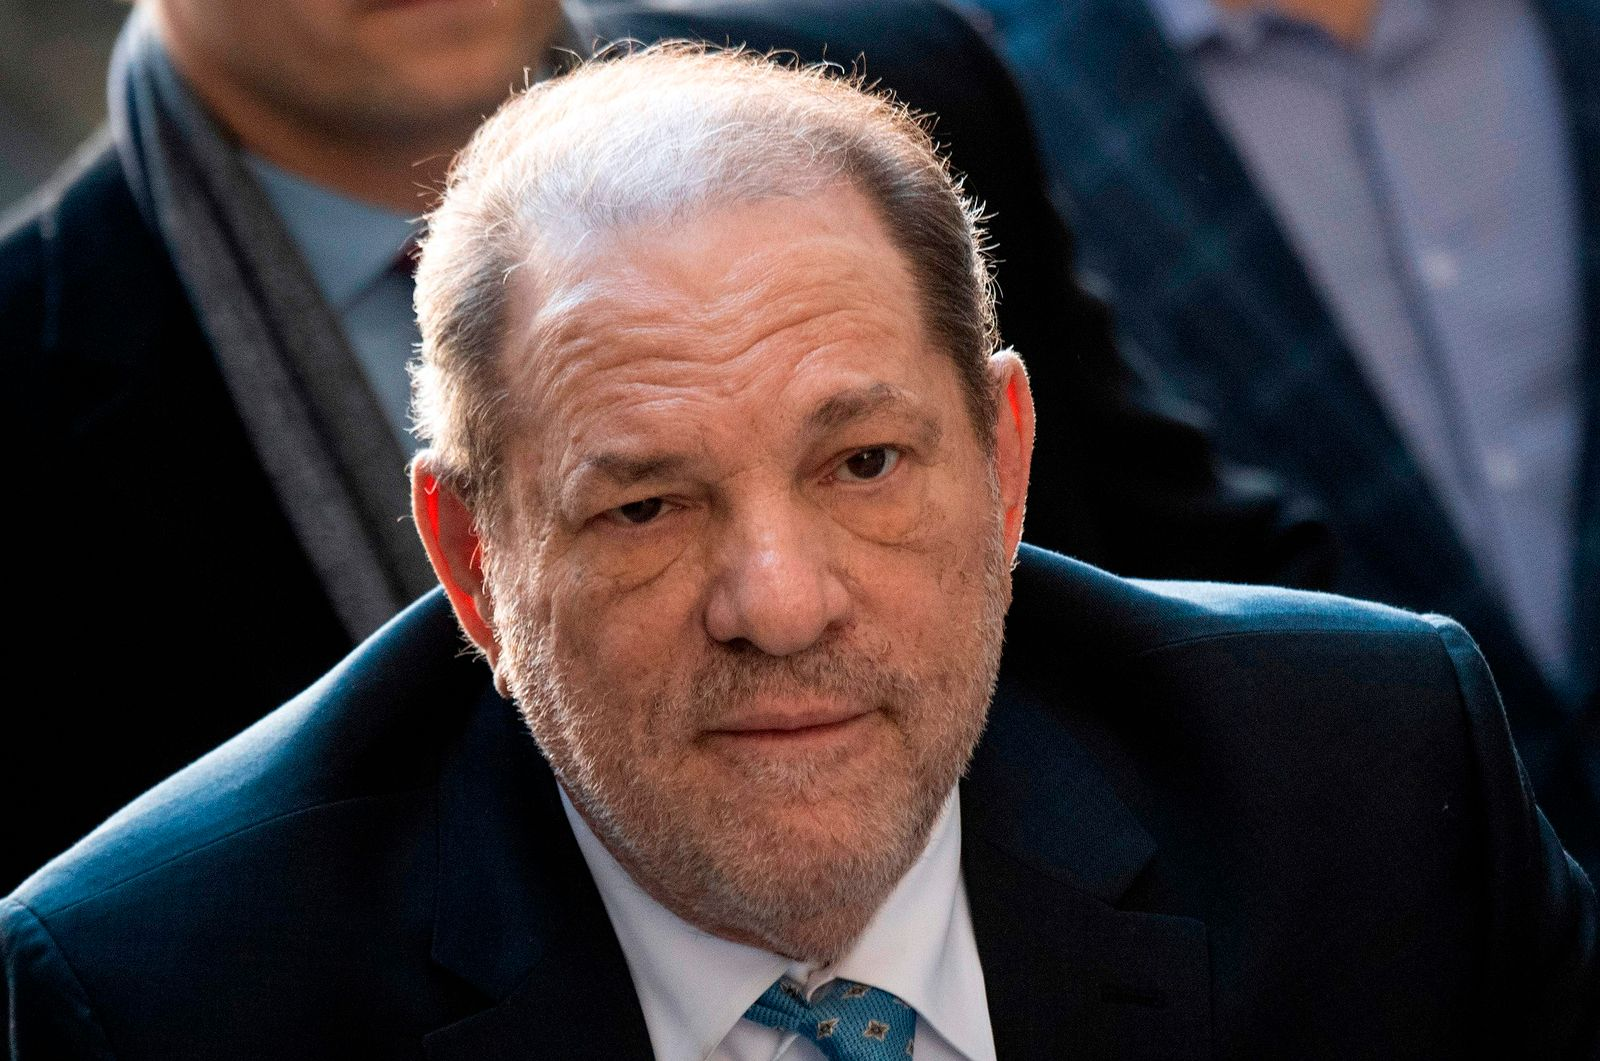 FILES-US-ENTERTAINMENT-ABUSE-WEINSTEIN-PRISON